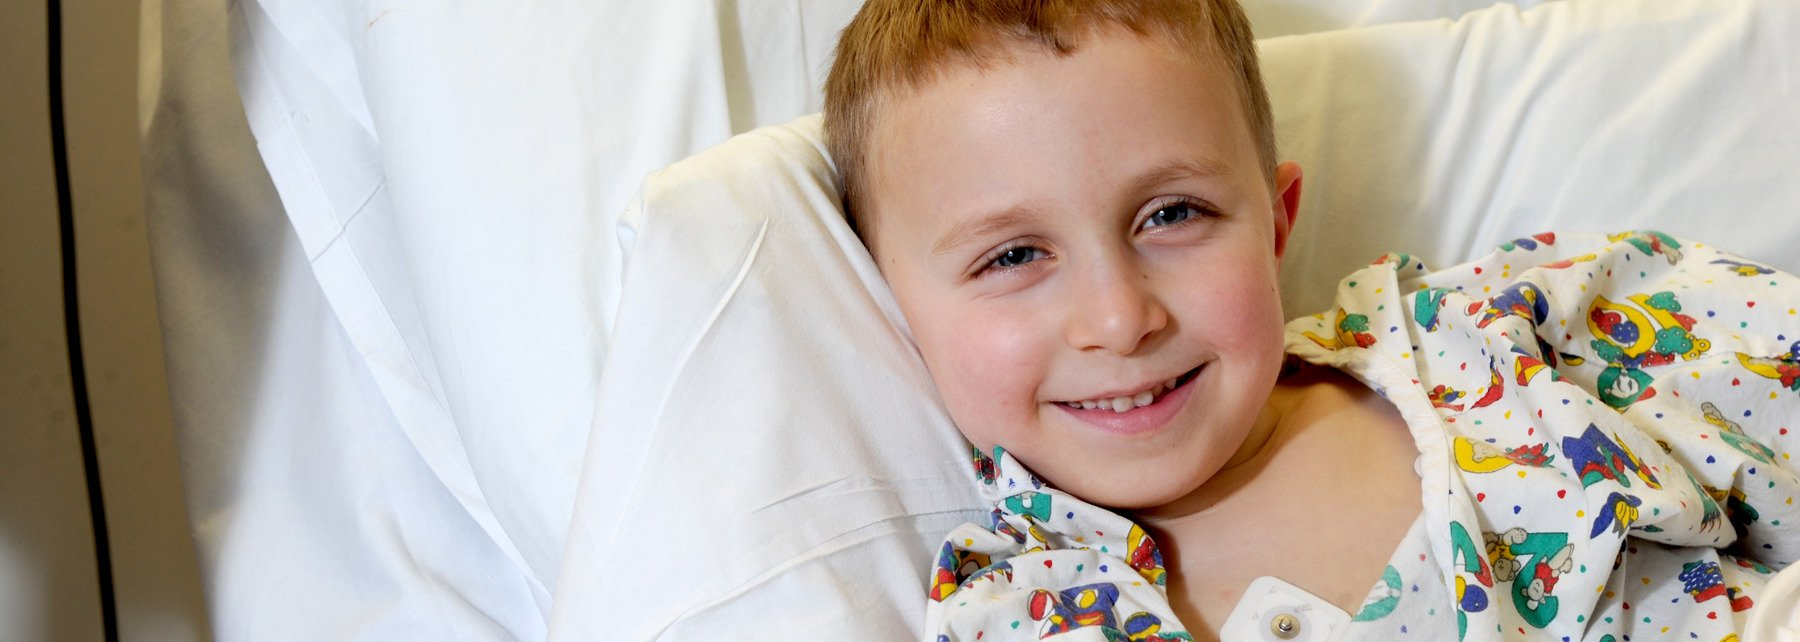 Young patient smiling whilst in hospital